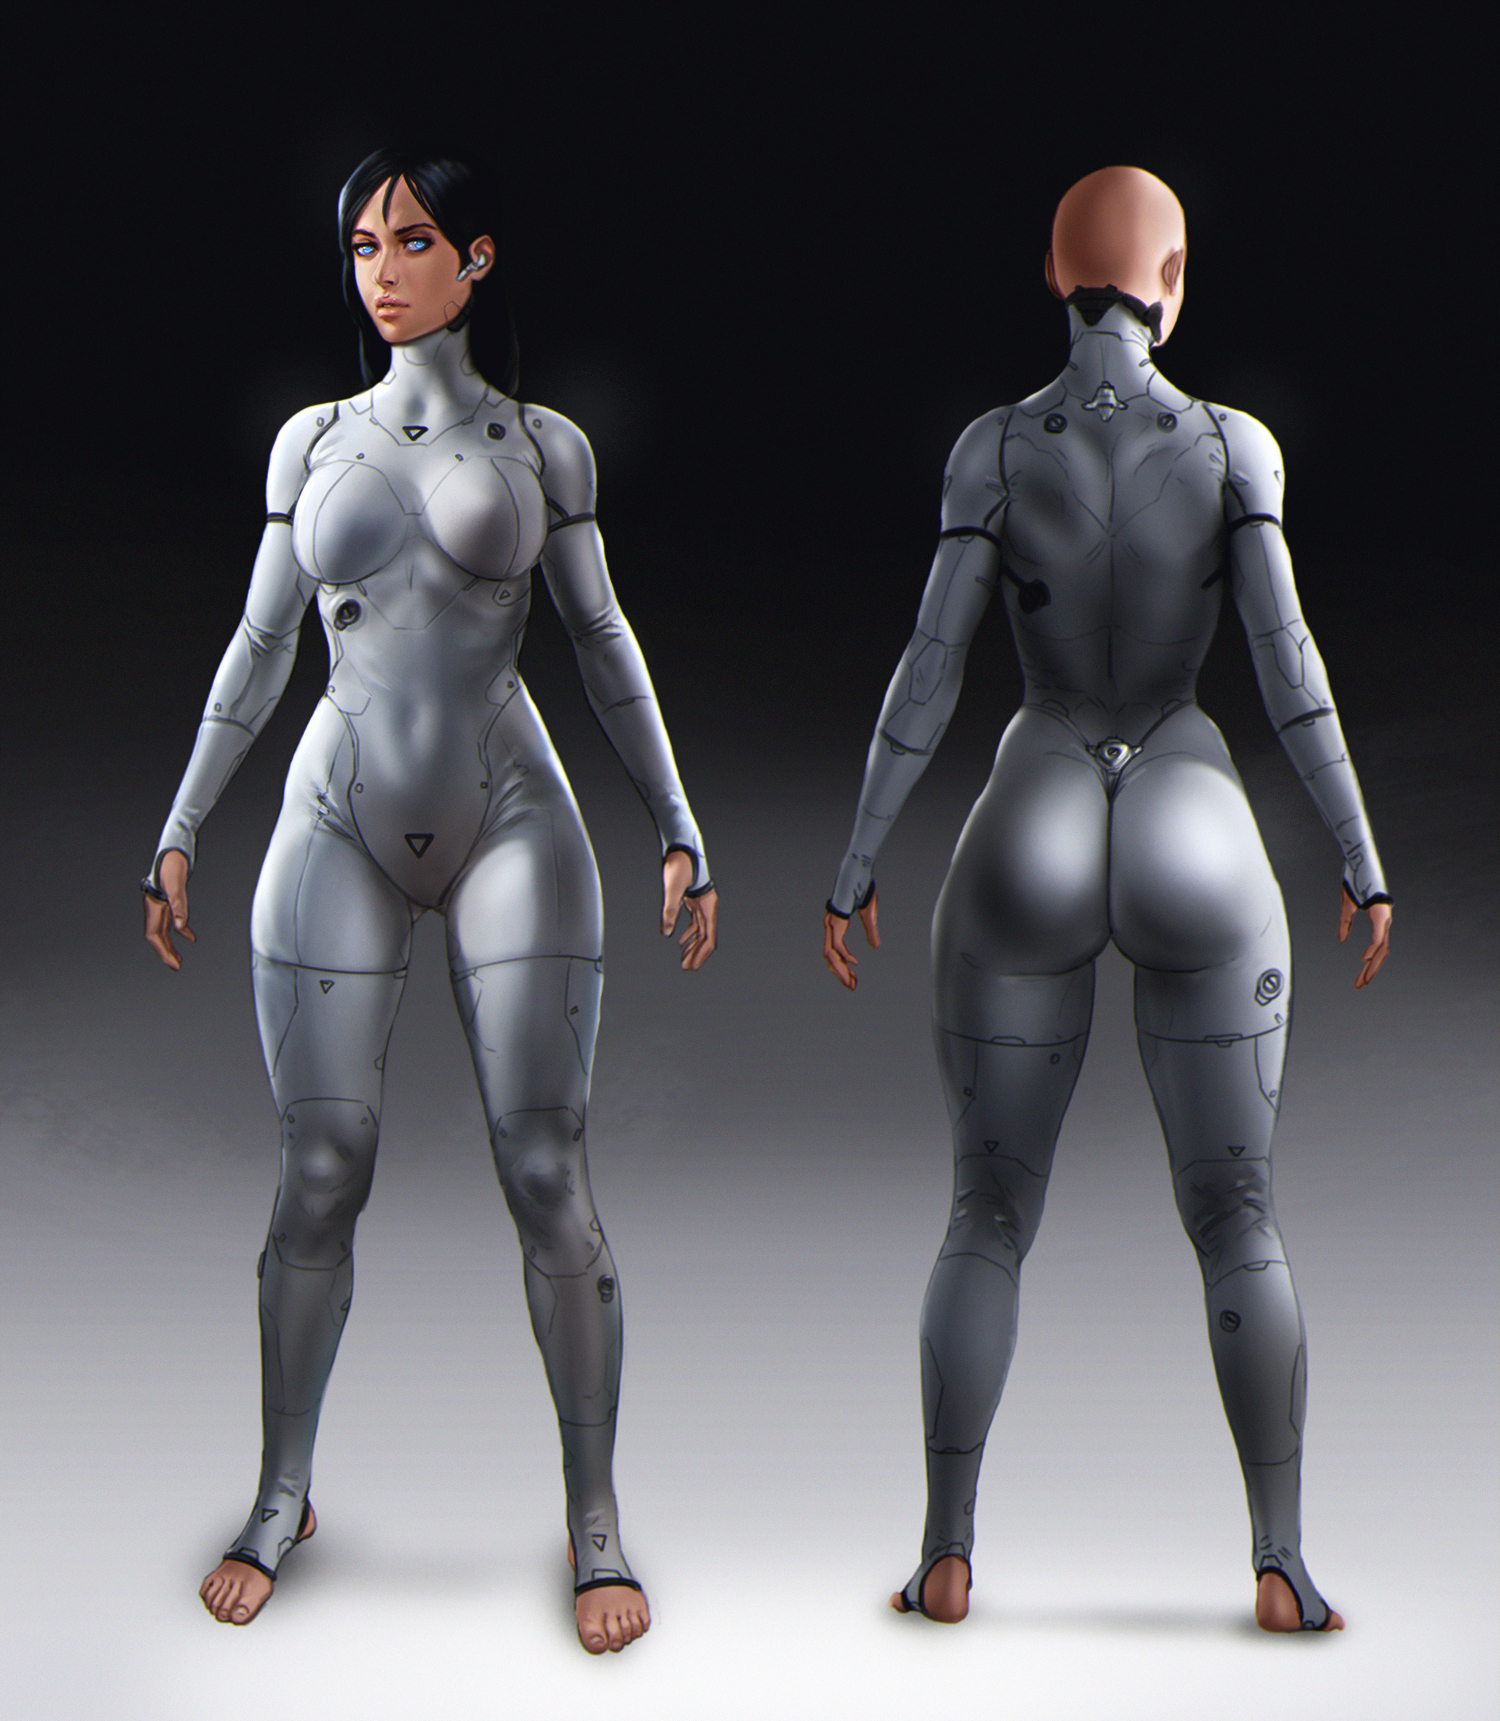 Character/Suit Design